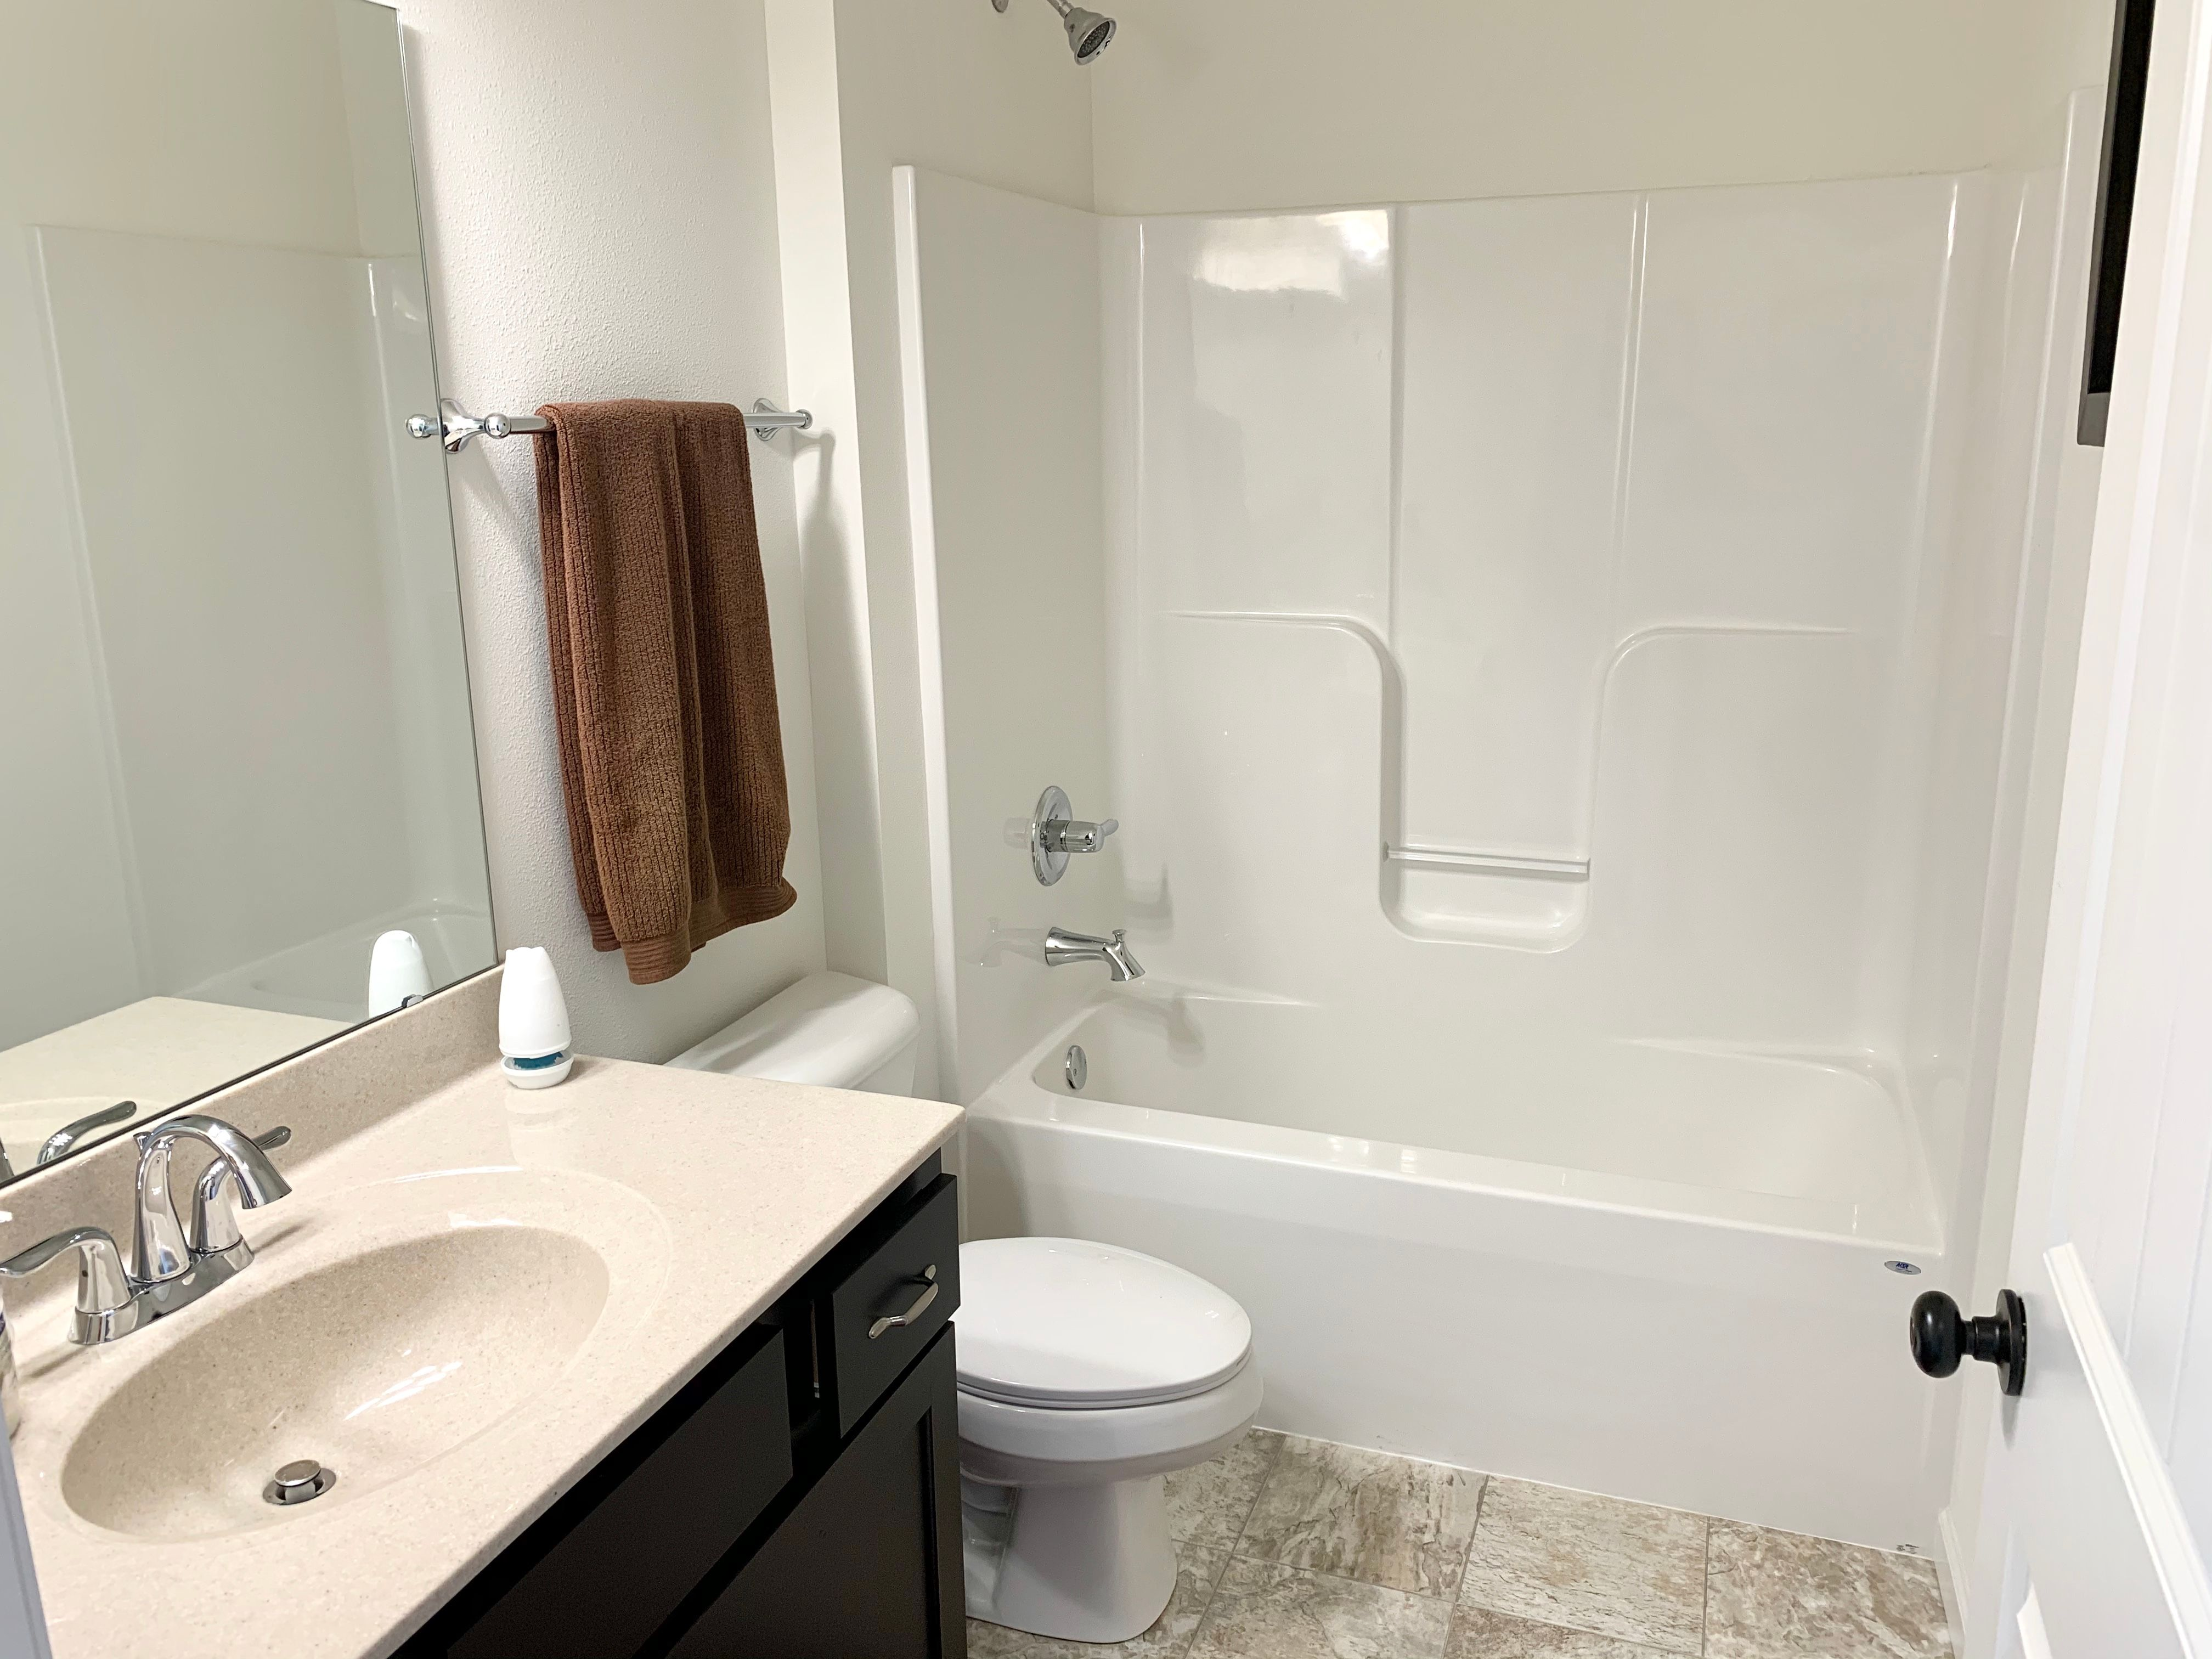 Bathroom featured in the Saffron By C.A. Jones, Inc.  in St. Louis, IL